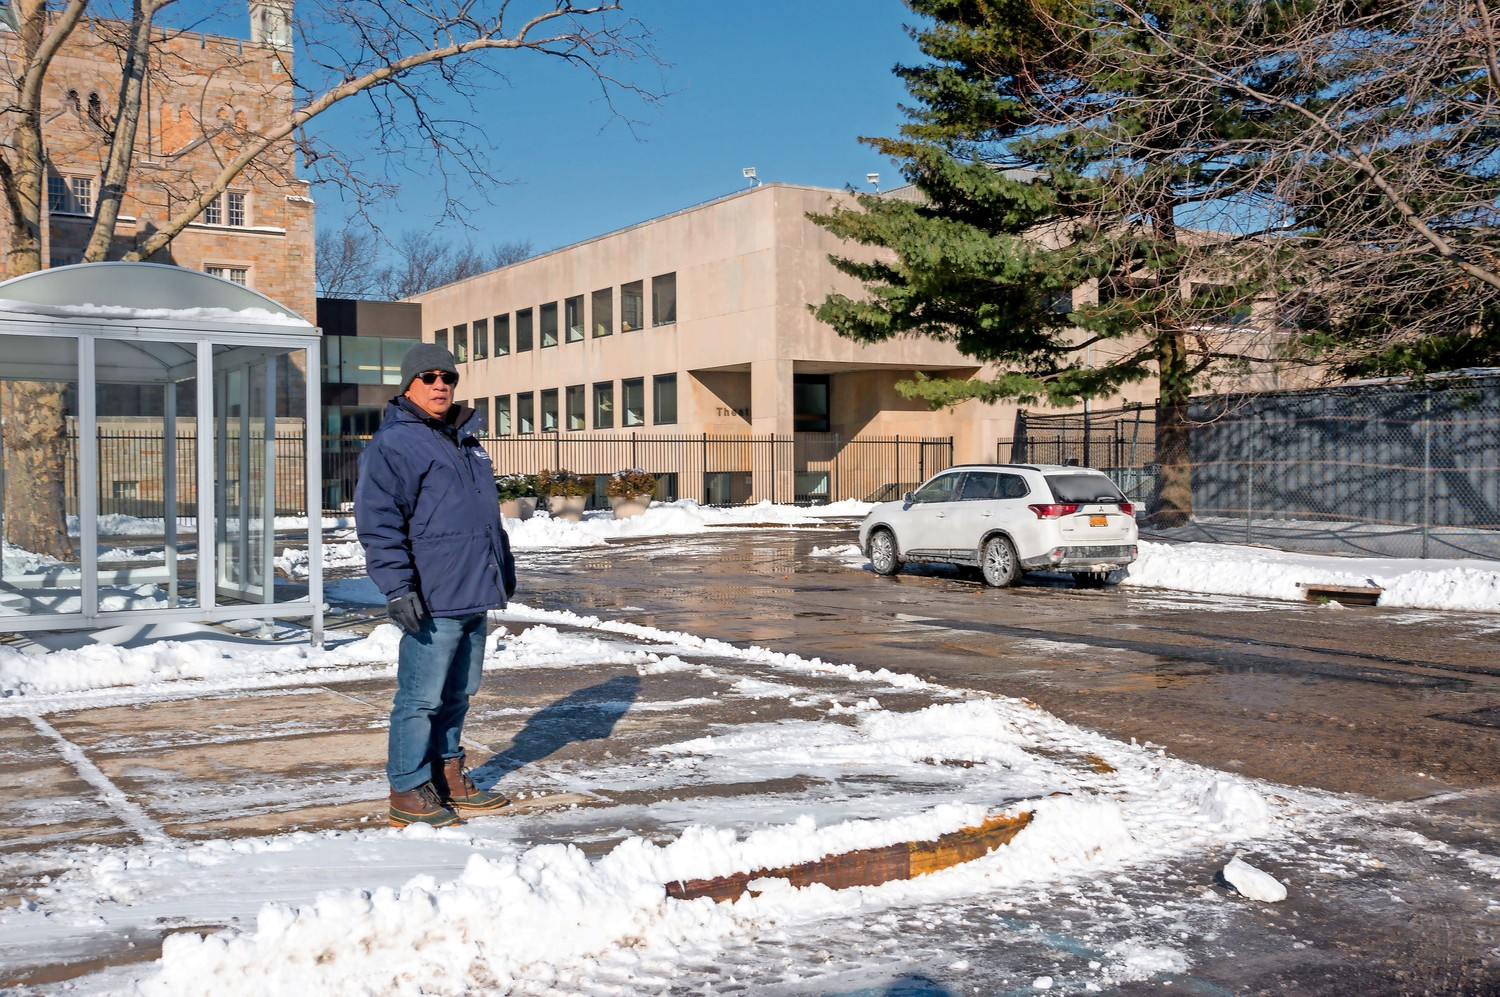 Raymundo Pegollo oversees the buildings and grounds staff at Lehman College. Pegollo, the chief administrative superintendent, worked late the night of the bomb cyclone to help clear the snow.